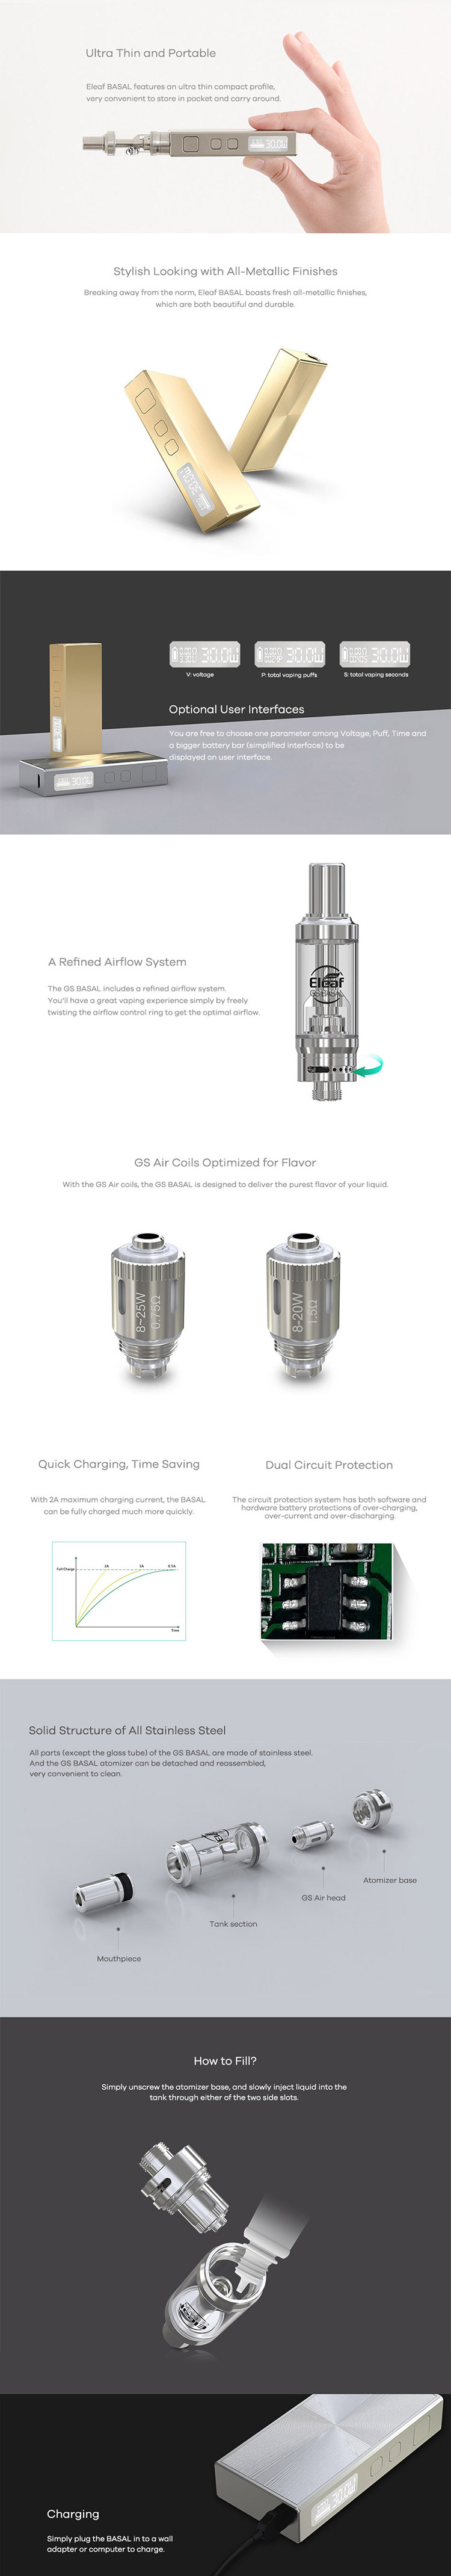 Eleaf Basal 30W Starter Kit Feature